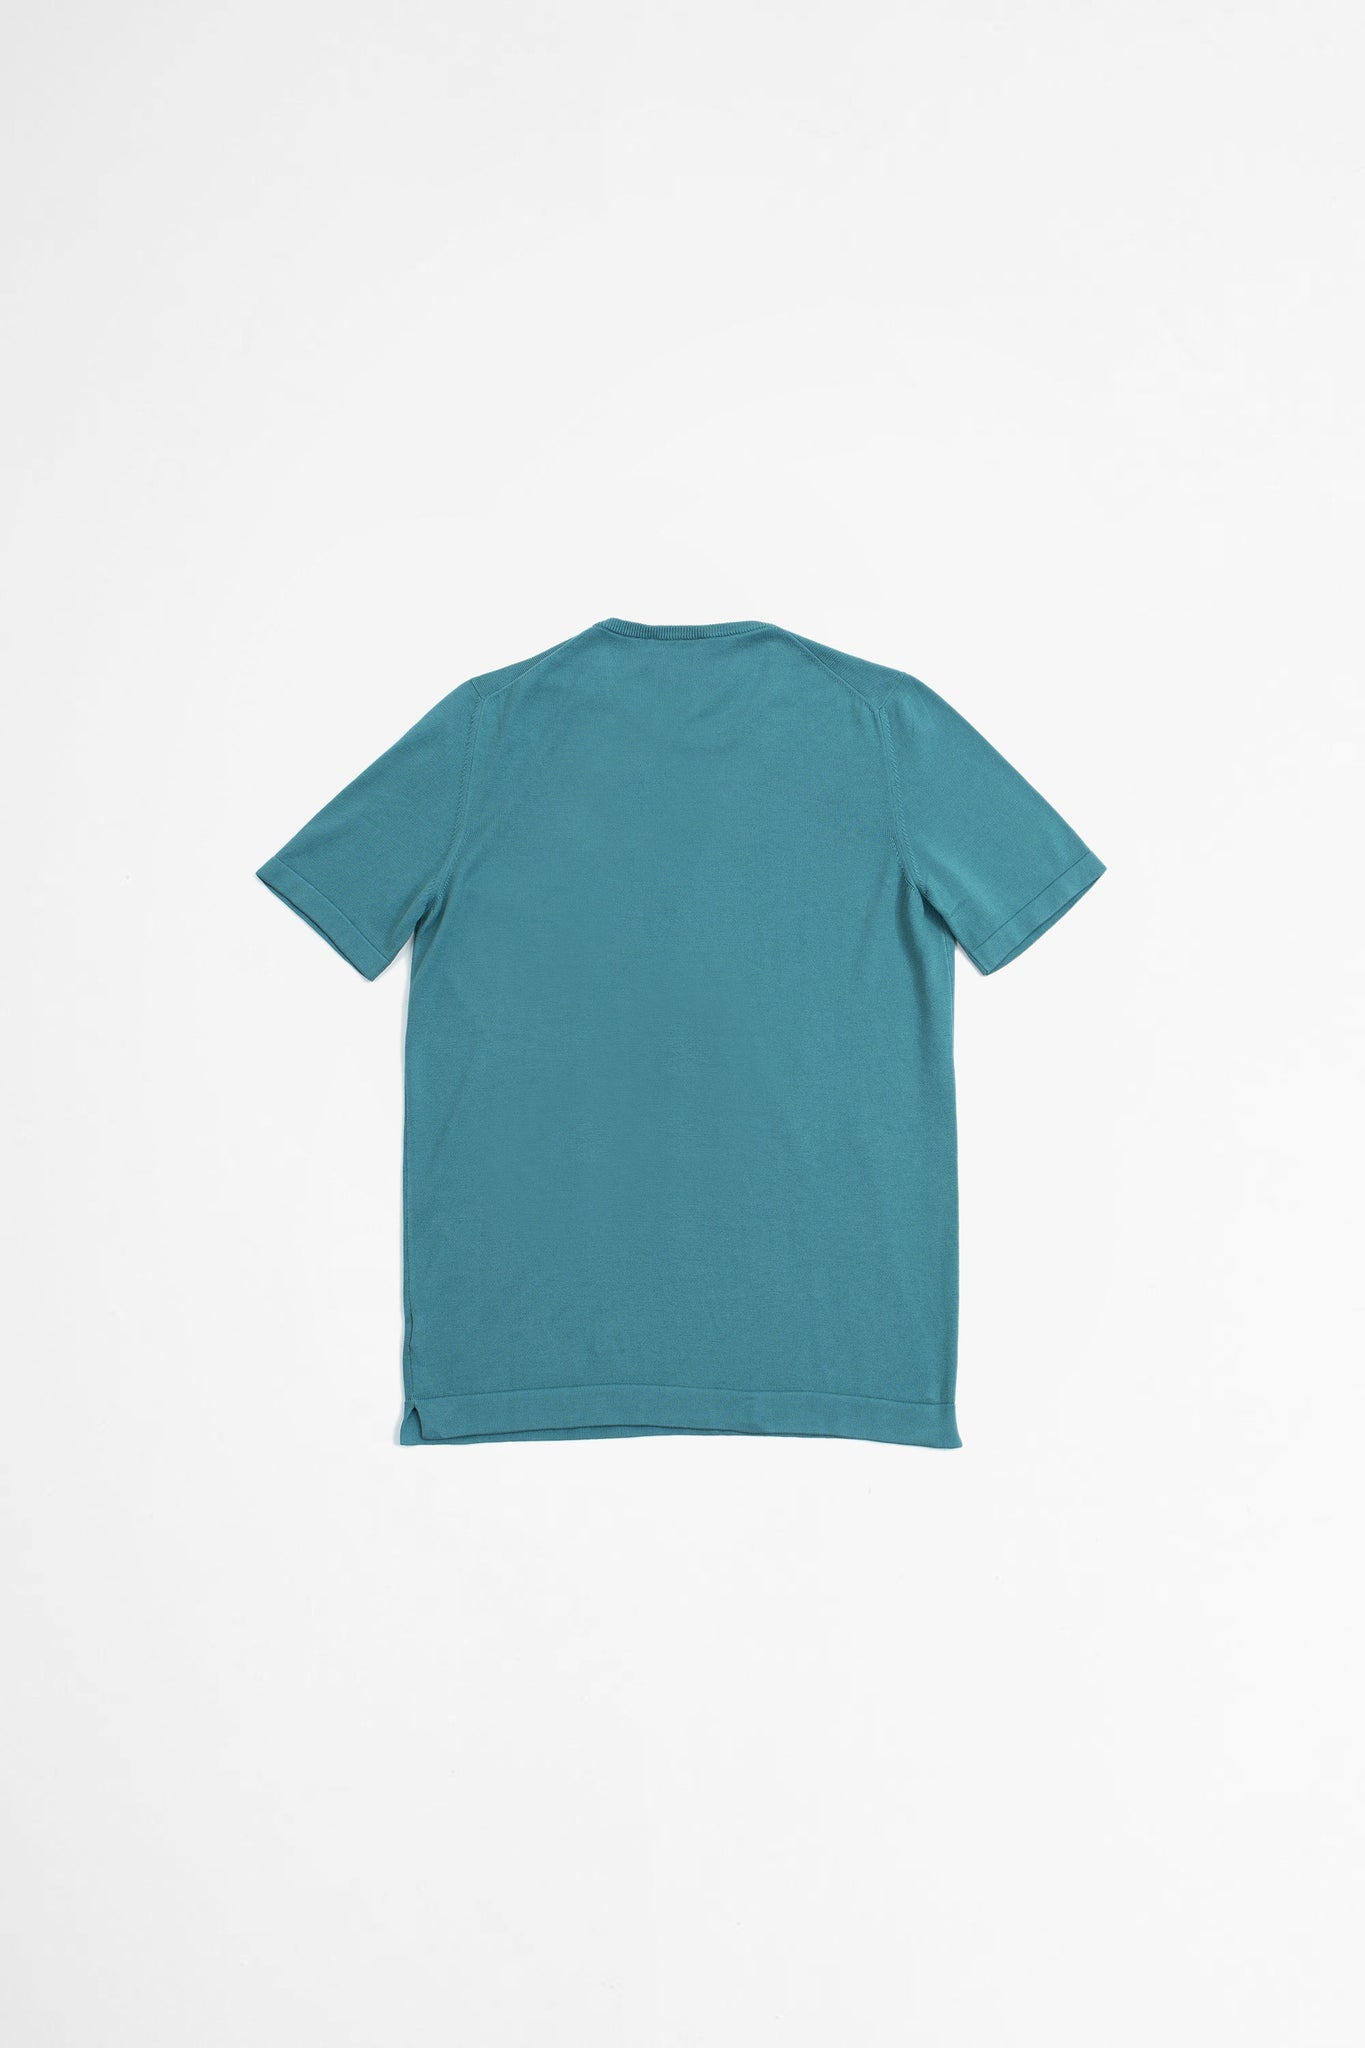 Paricollo short sleeve turquoise